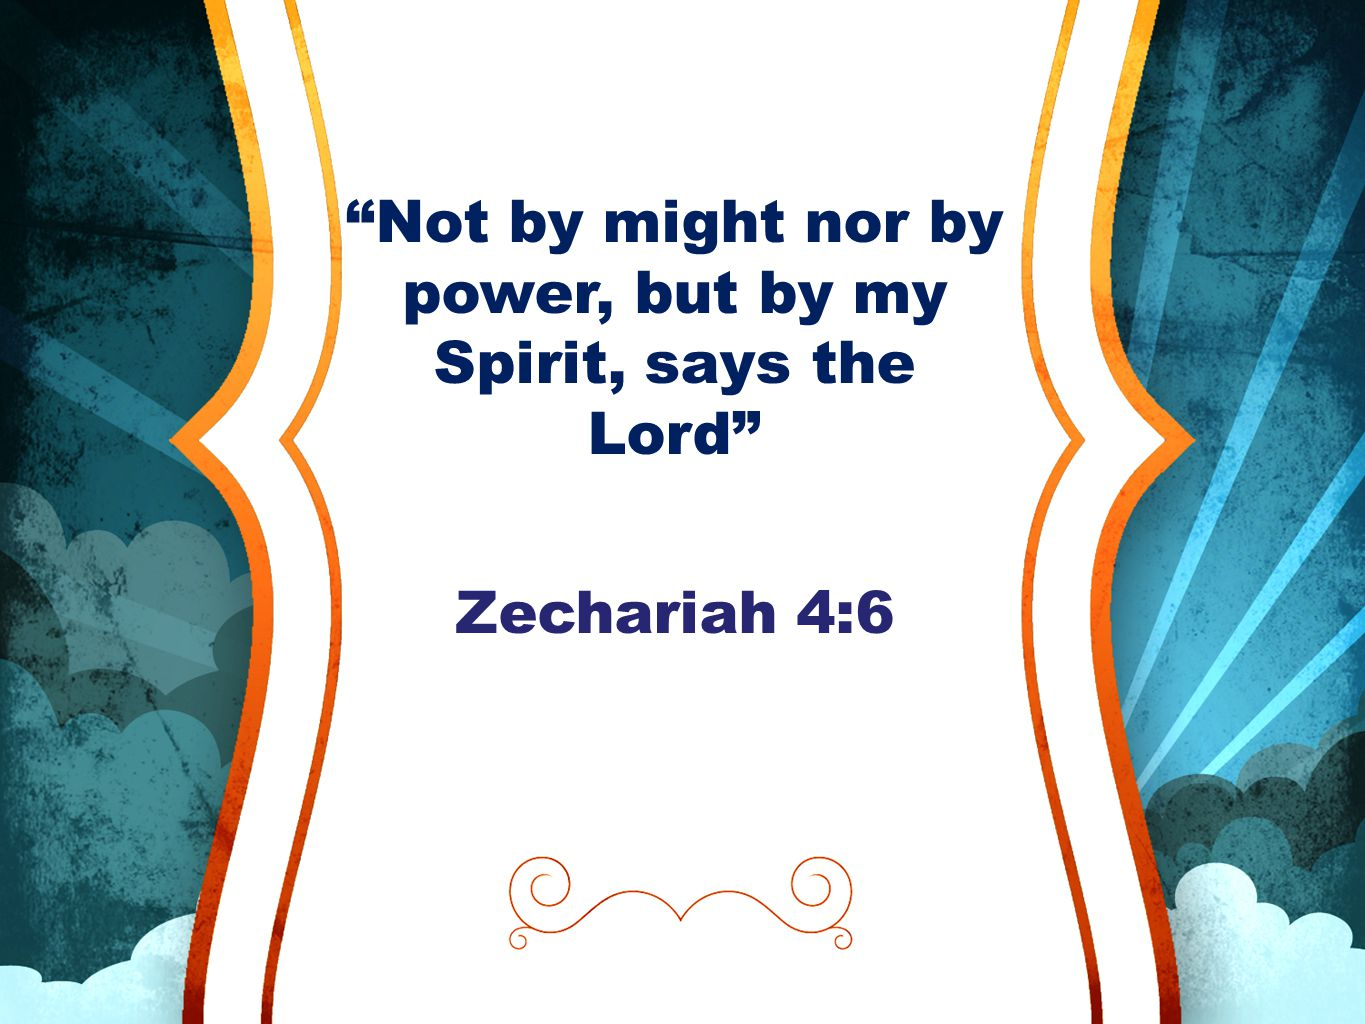 Not by might nor by power, but by my Spirit, says the Lord Zechariah 4:6